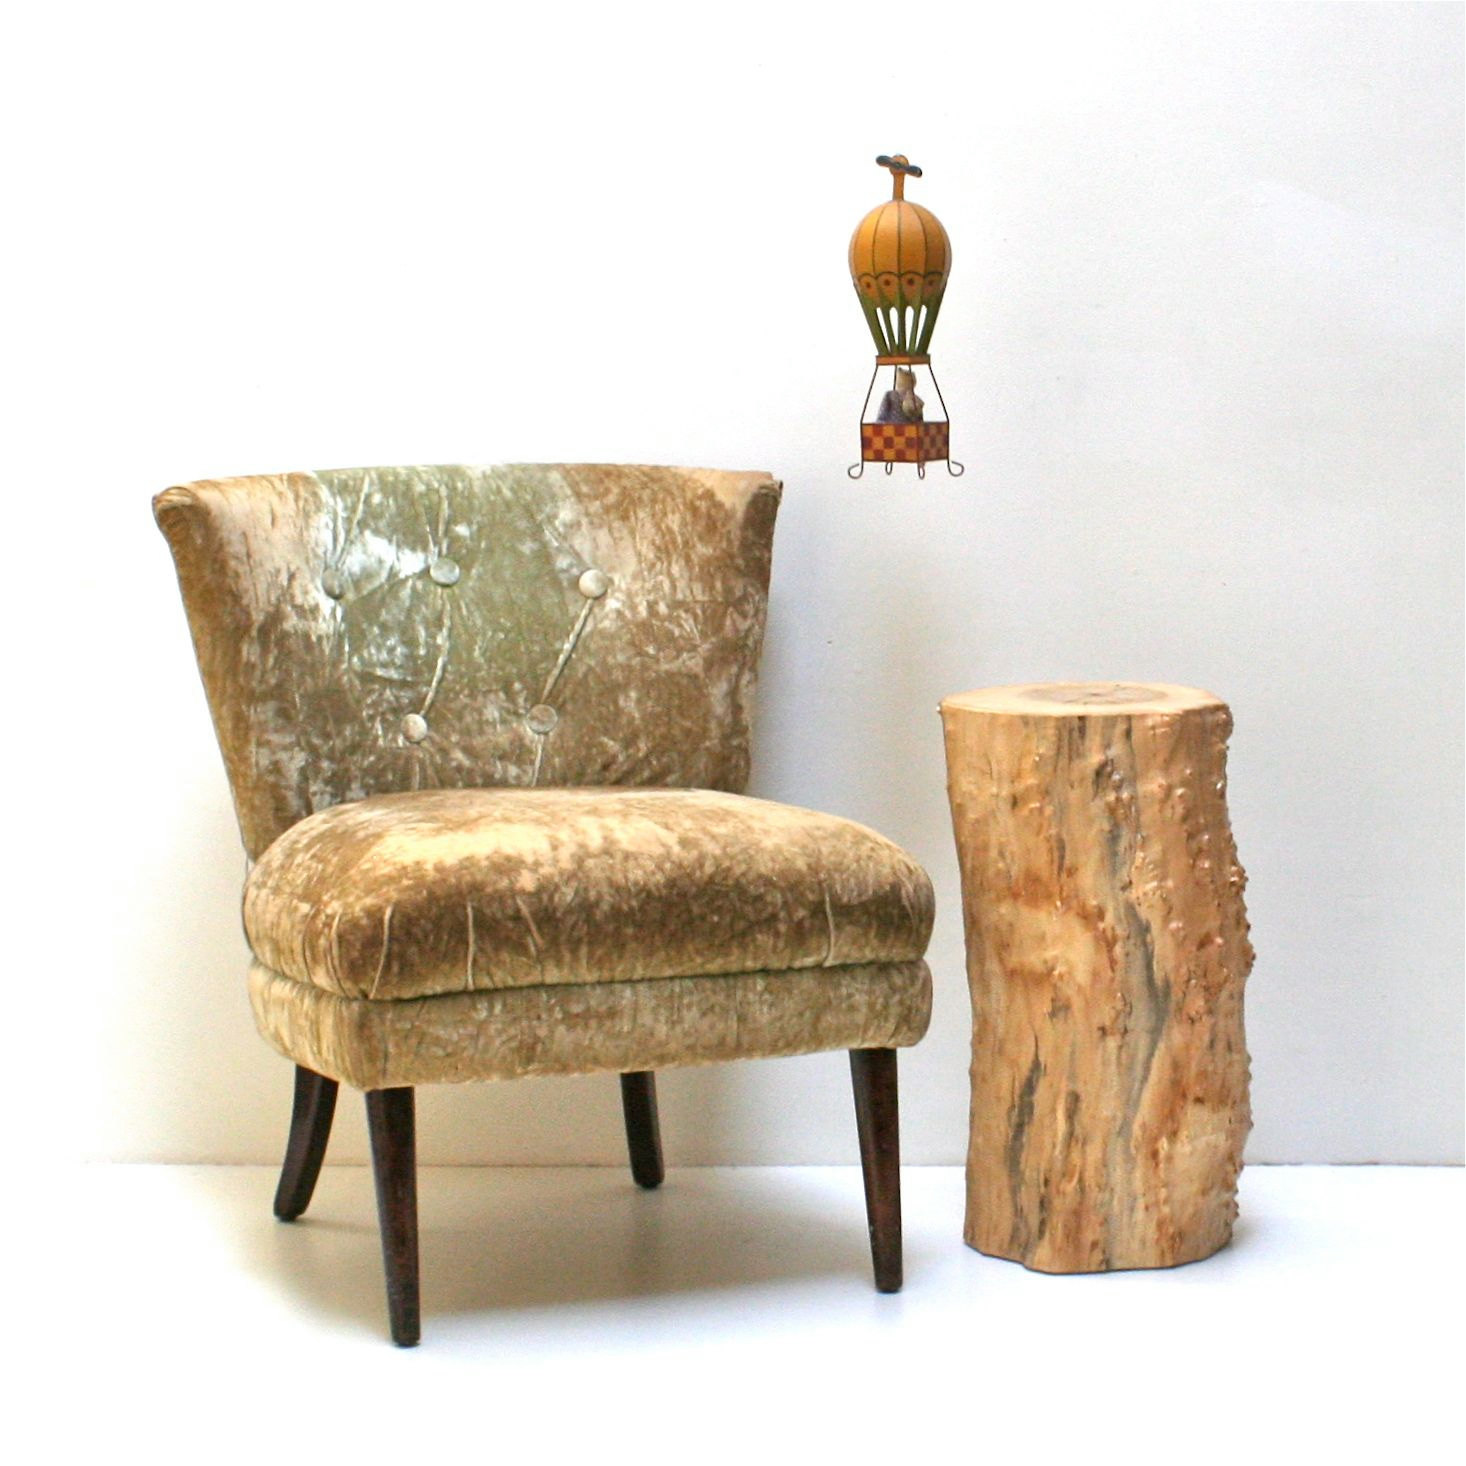 wood stump side table add stunning and rustic look to a room homesfeed